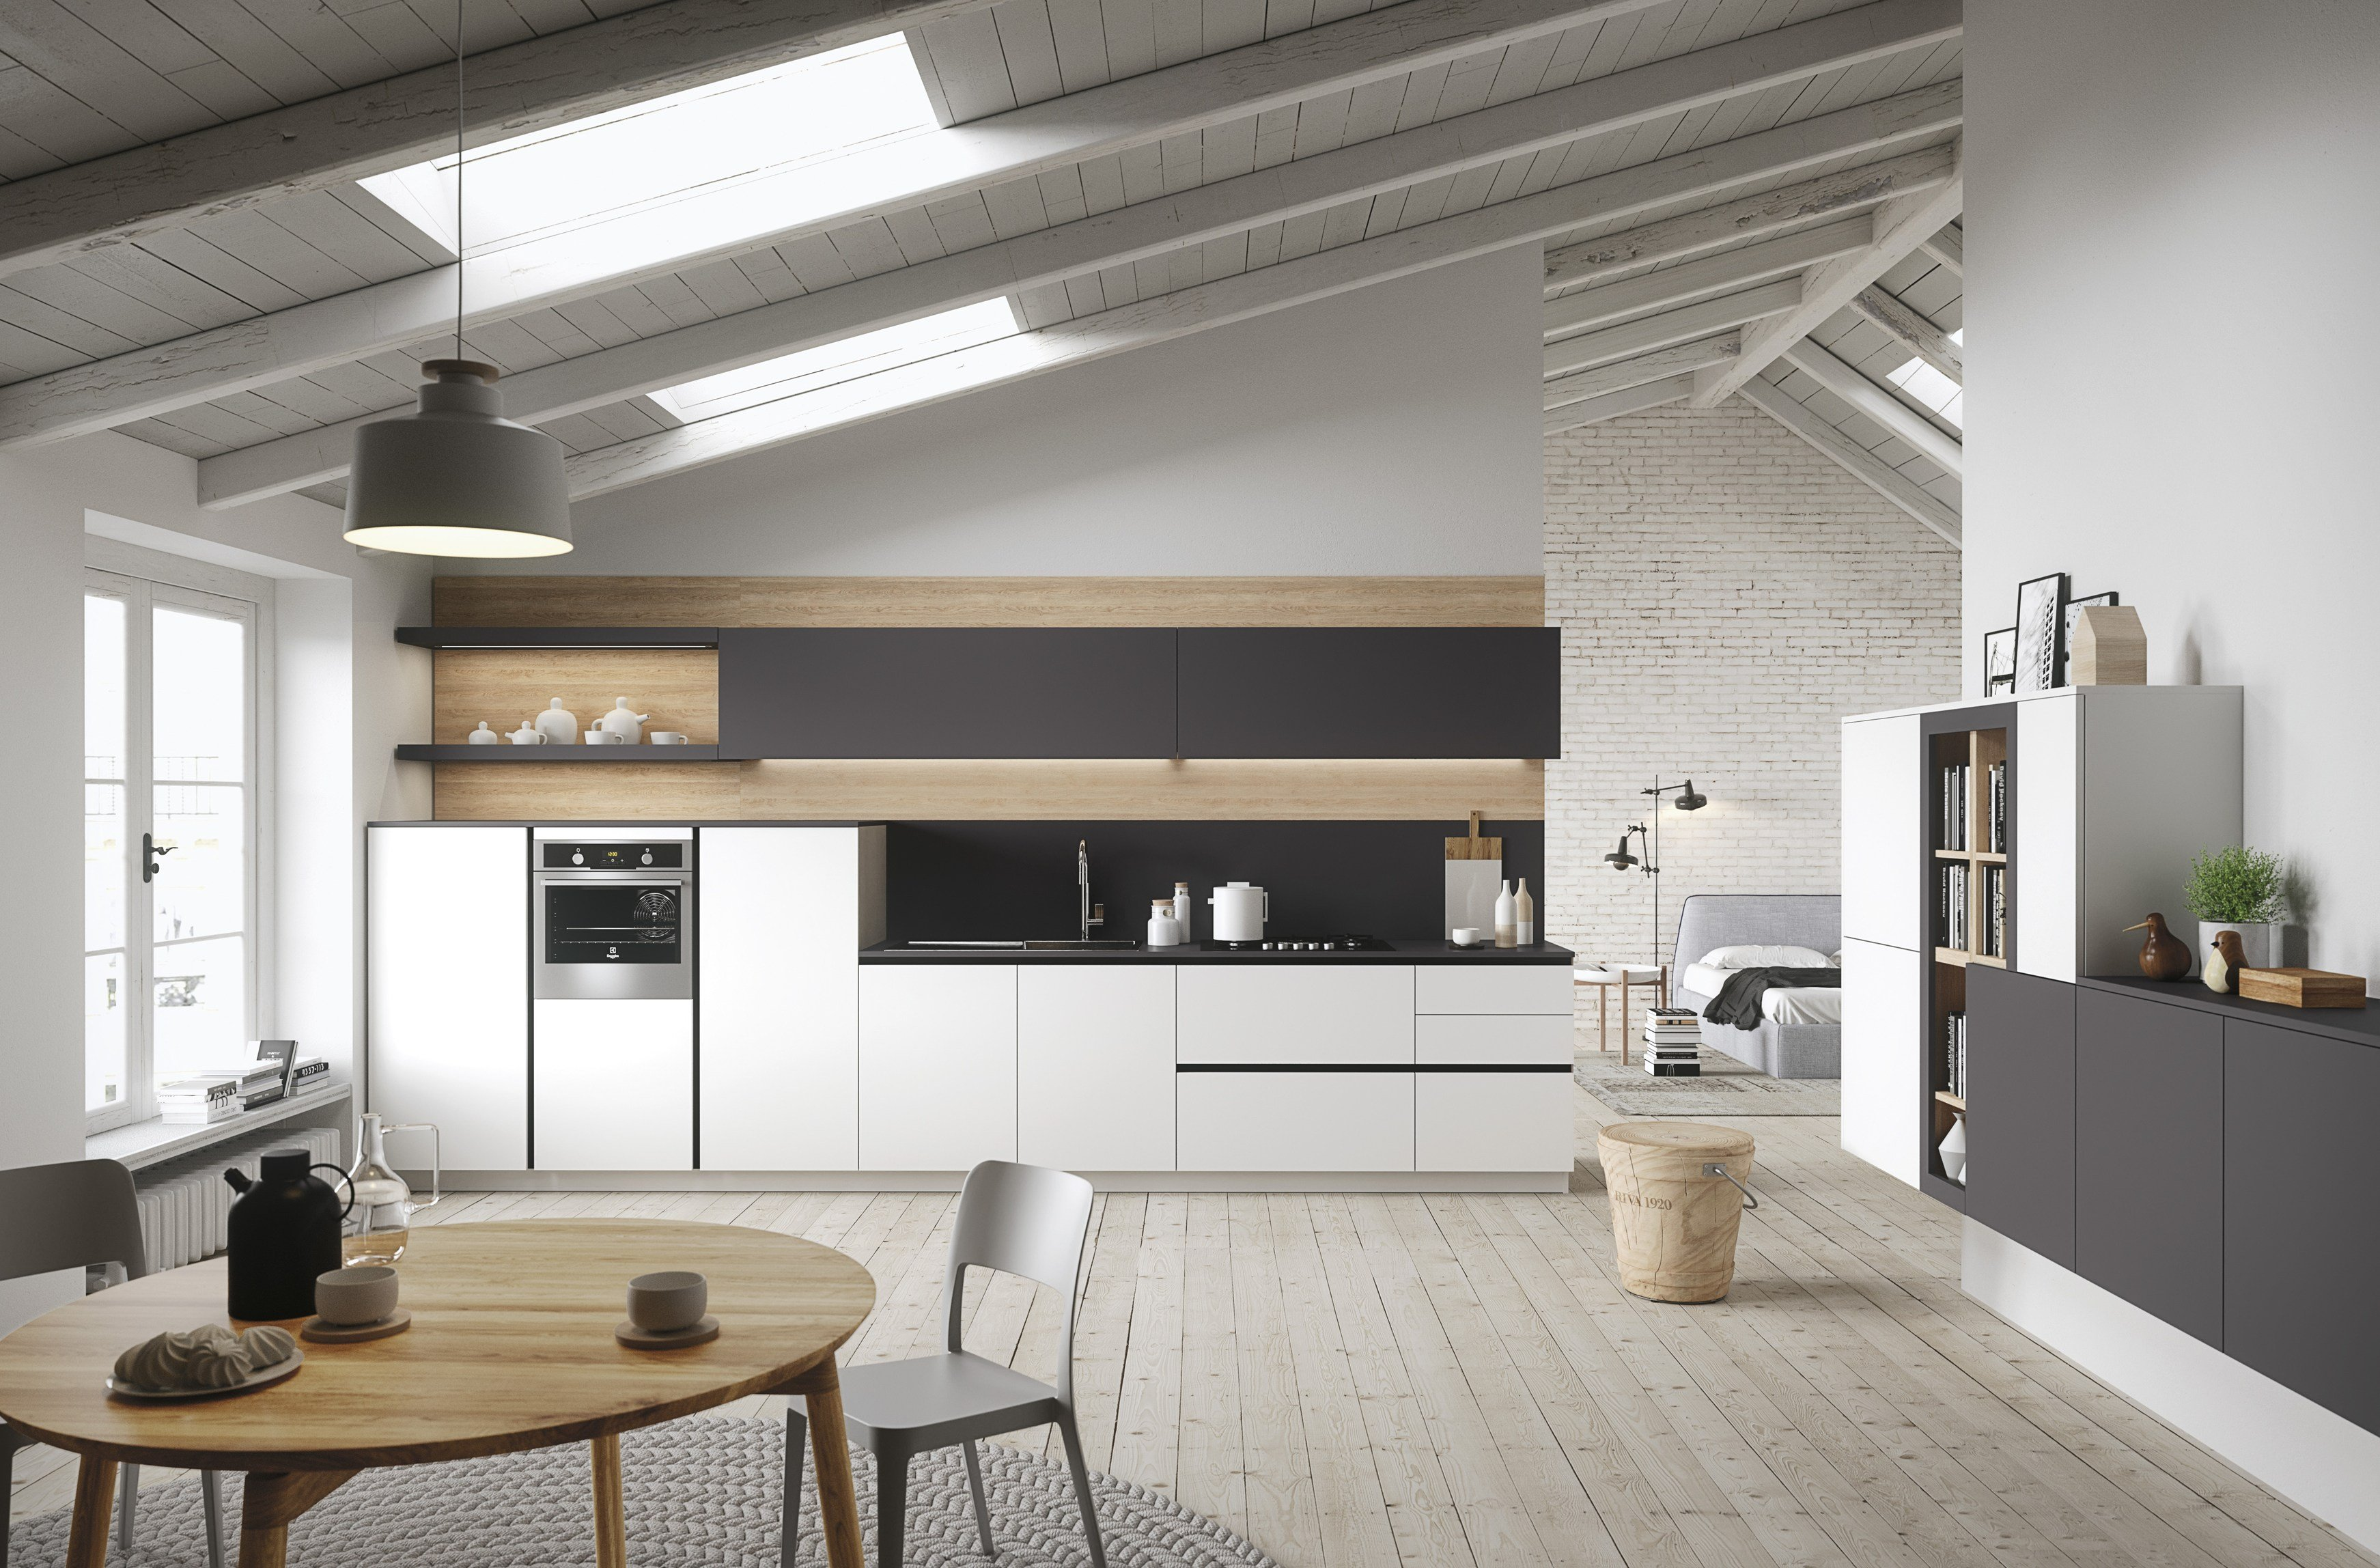 First contemporary style kitchen by snaidero for Cocina rustica moderna